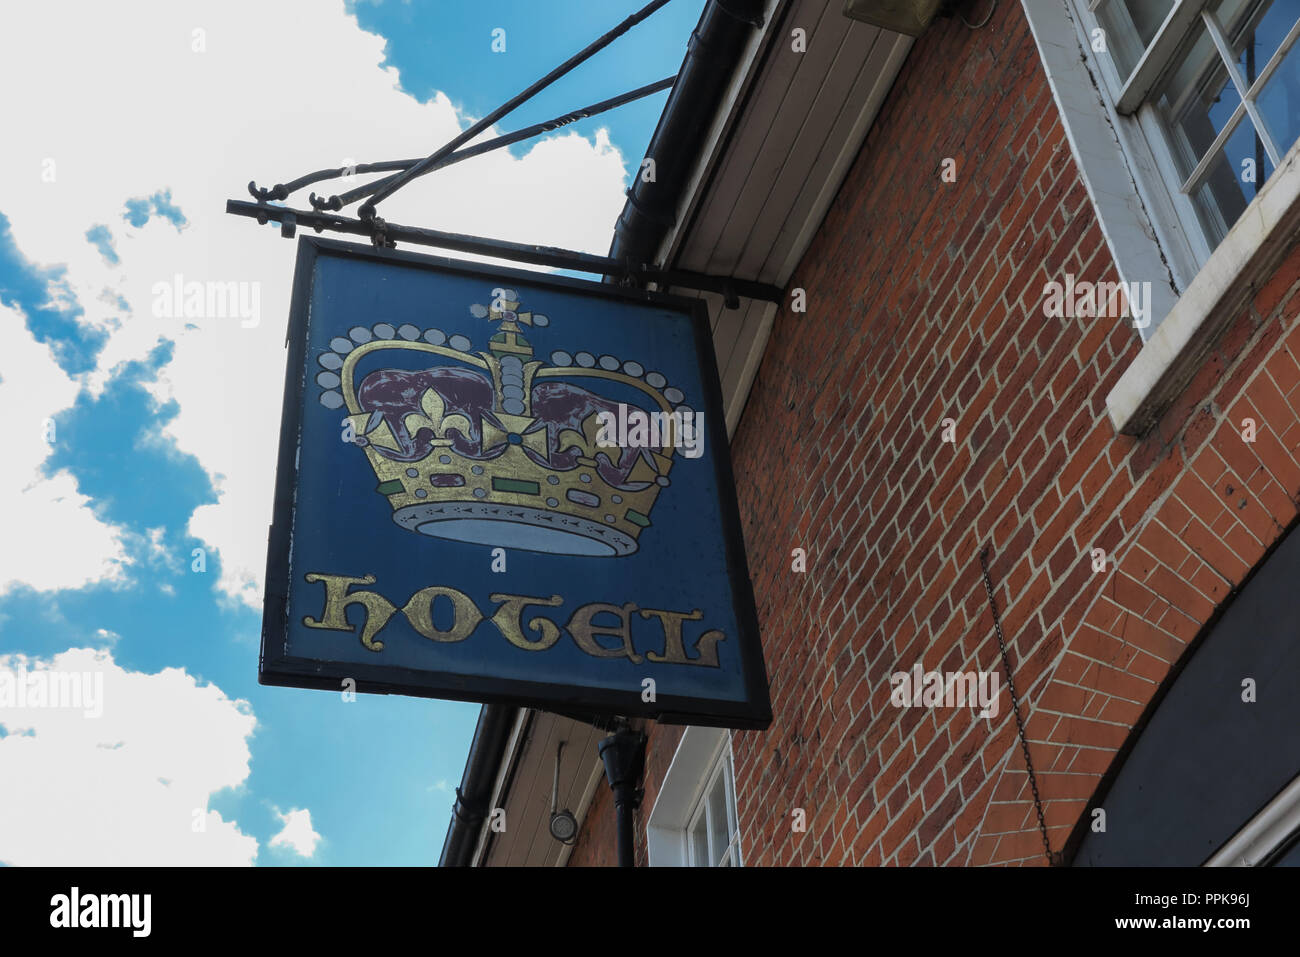 Crown Hotel, High Street, Amersham, Buckinghamshire - Stock Image